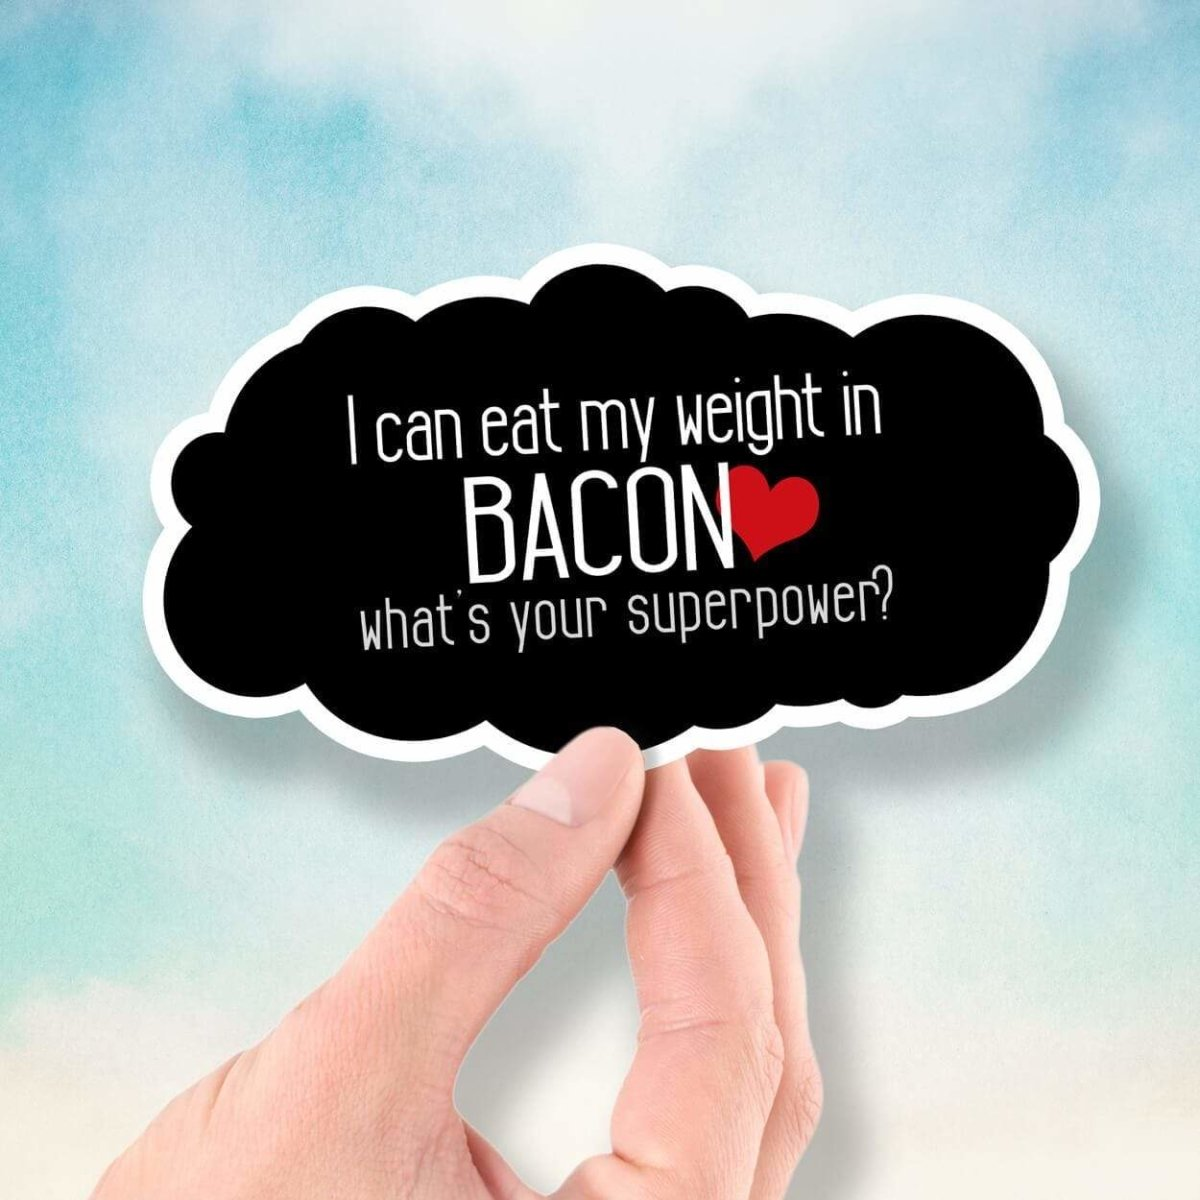 I Can Eat My Weight In Bacon - What's Your Superpower? - Vinyl Sticker - Dan Pearce Sticker Shop